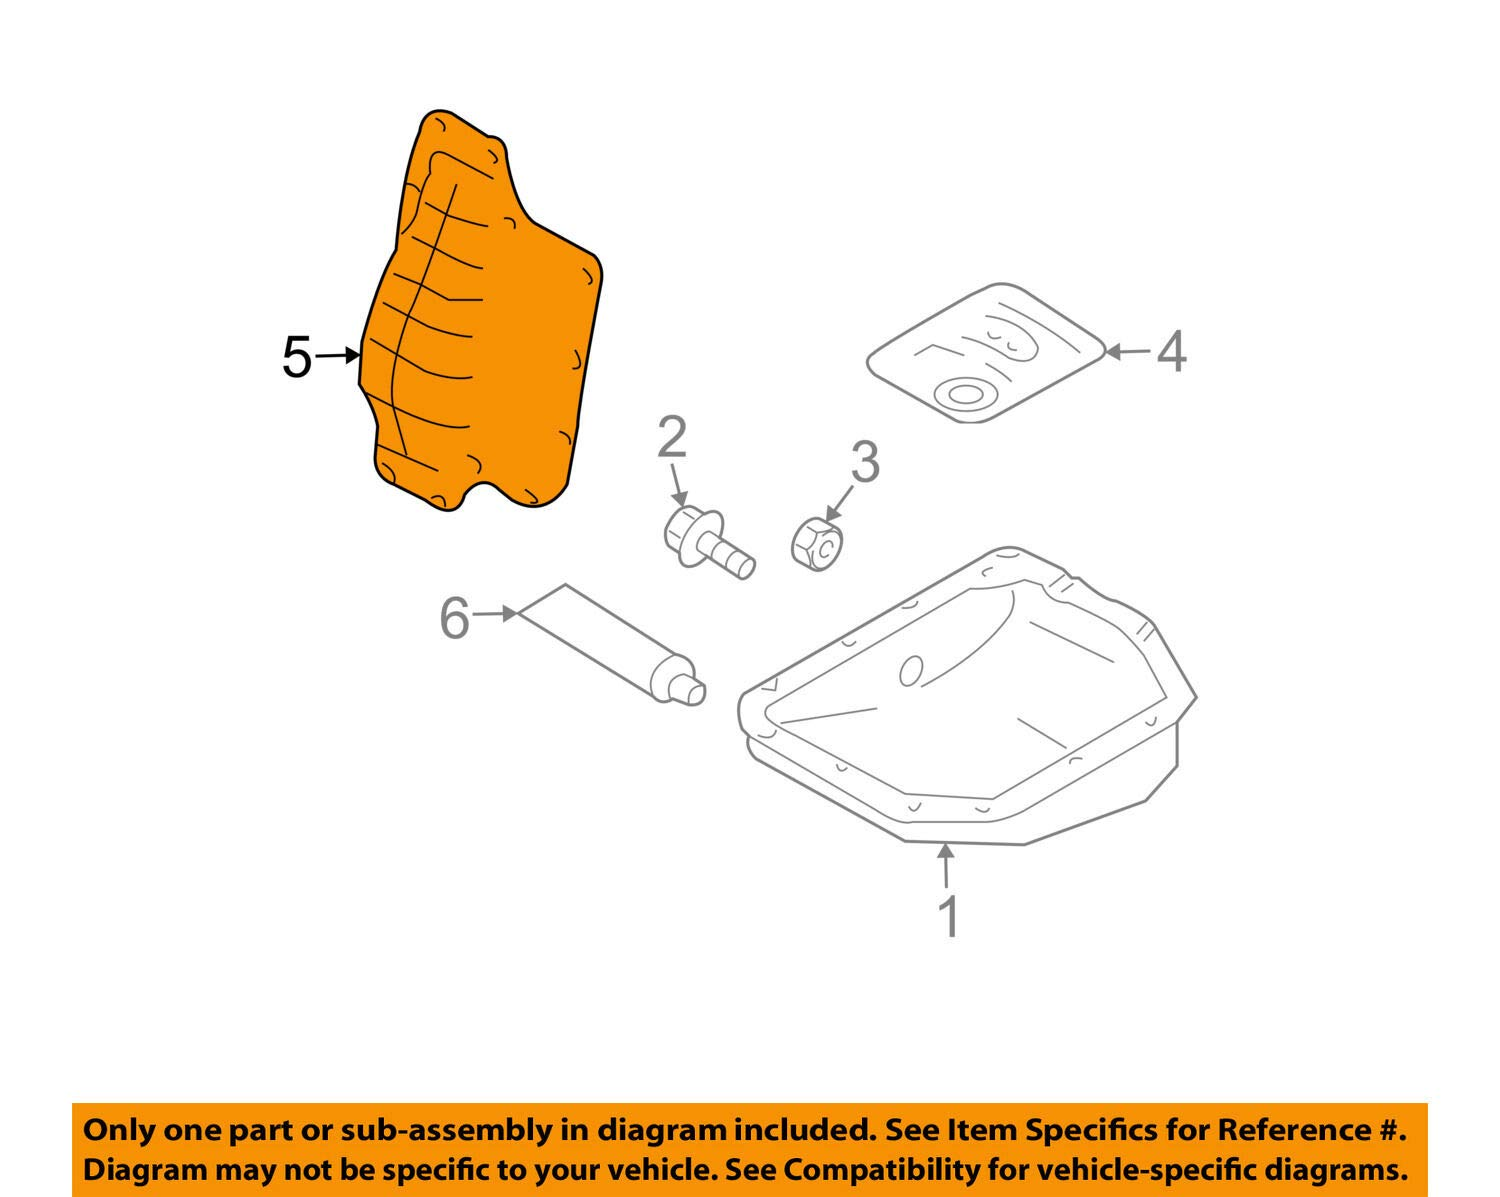 HYUNDAI OEM 06-11 Accent Transaxle Parts-Side Cover 4533428012